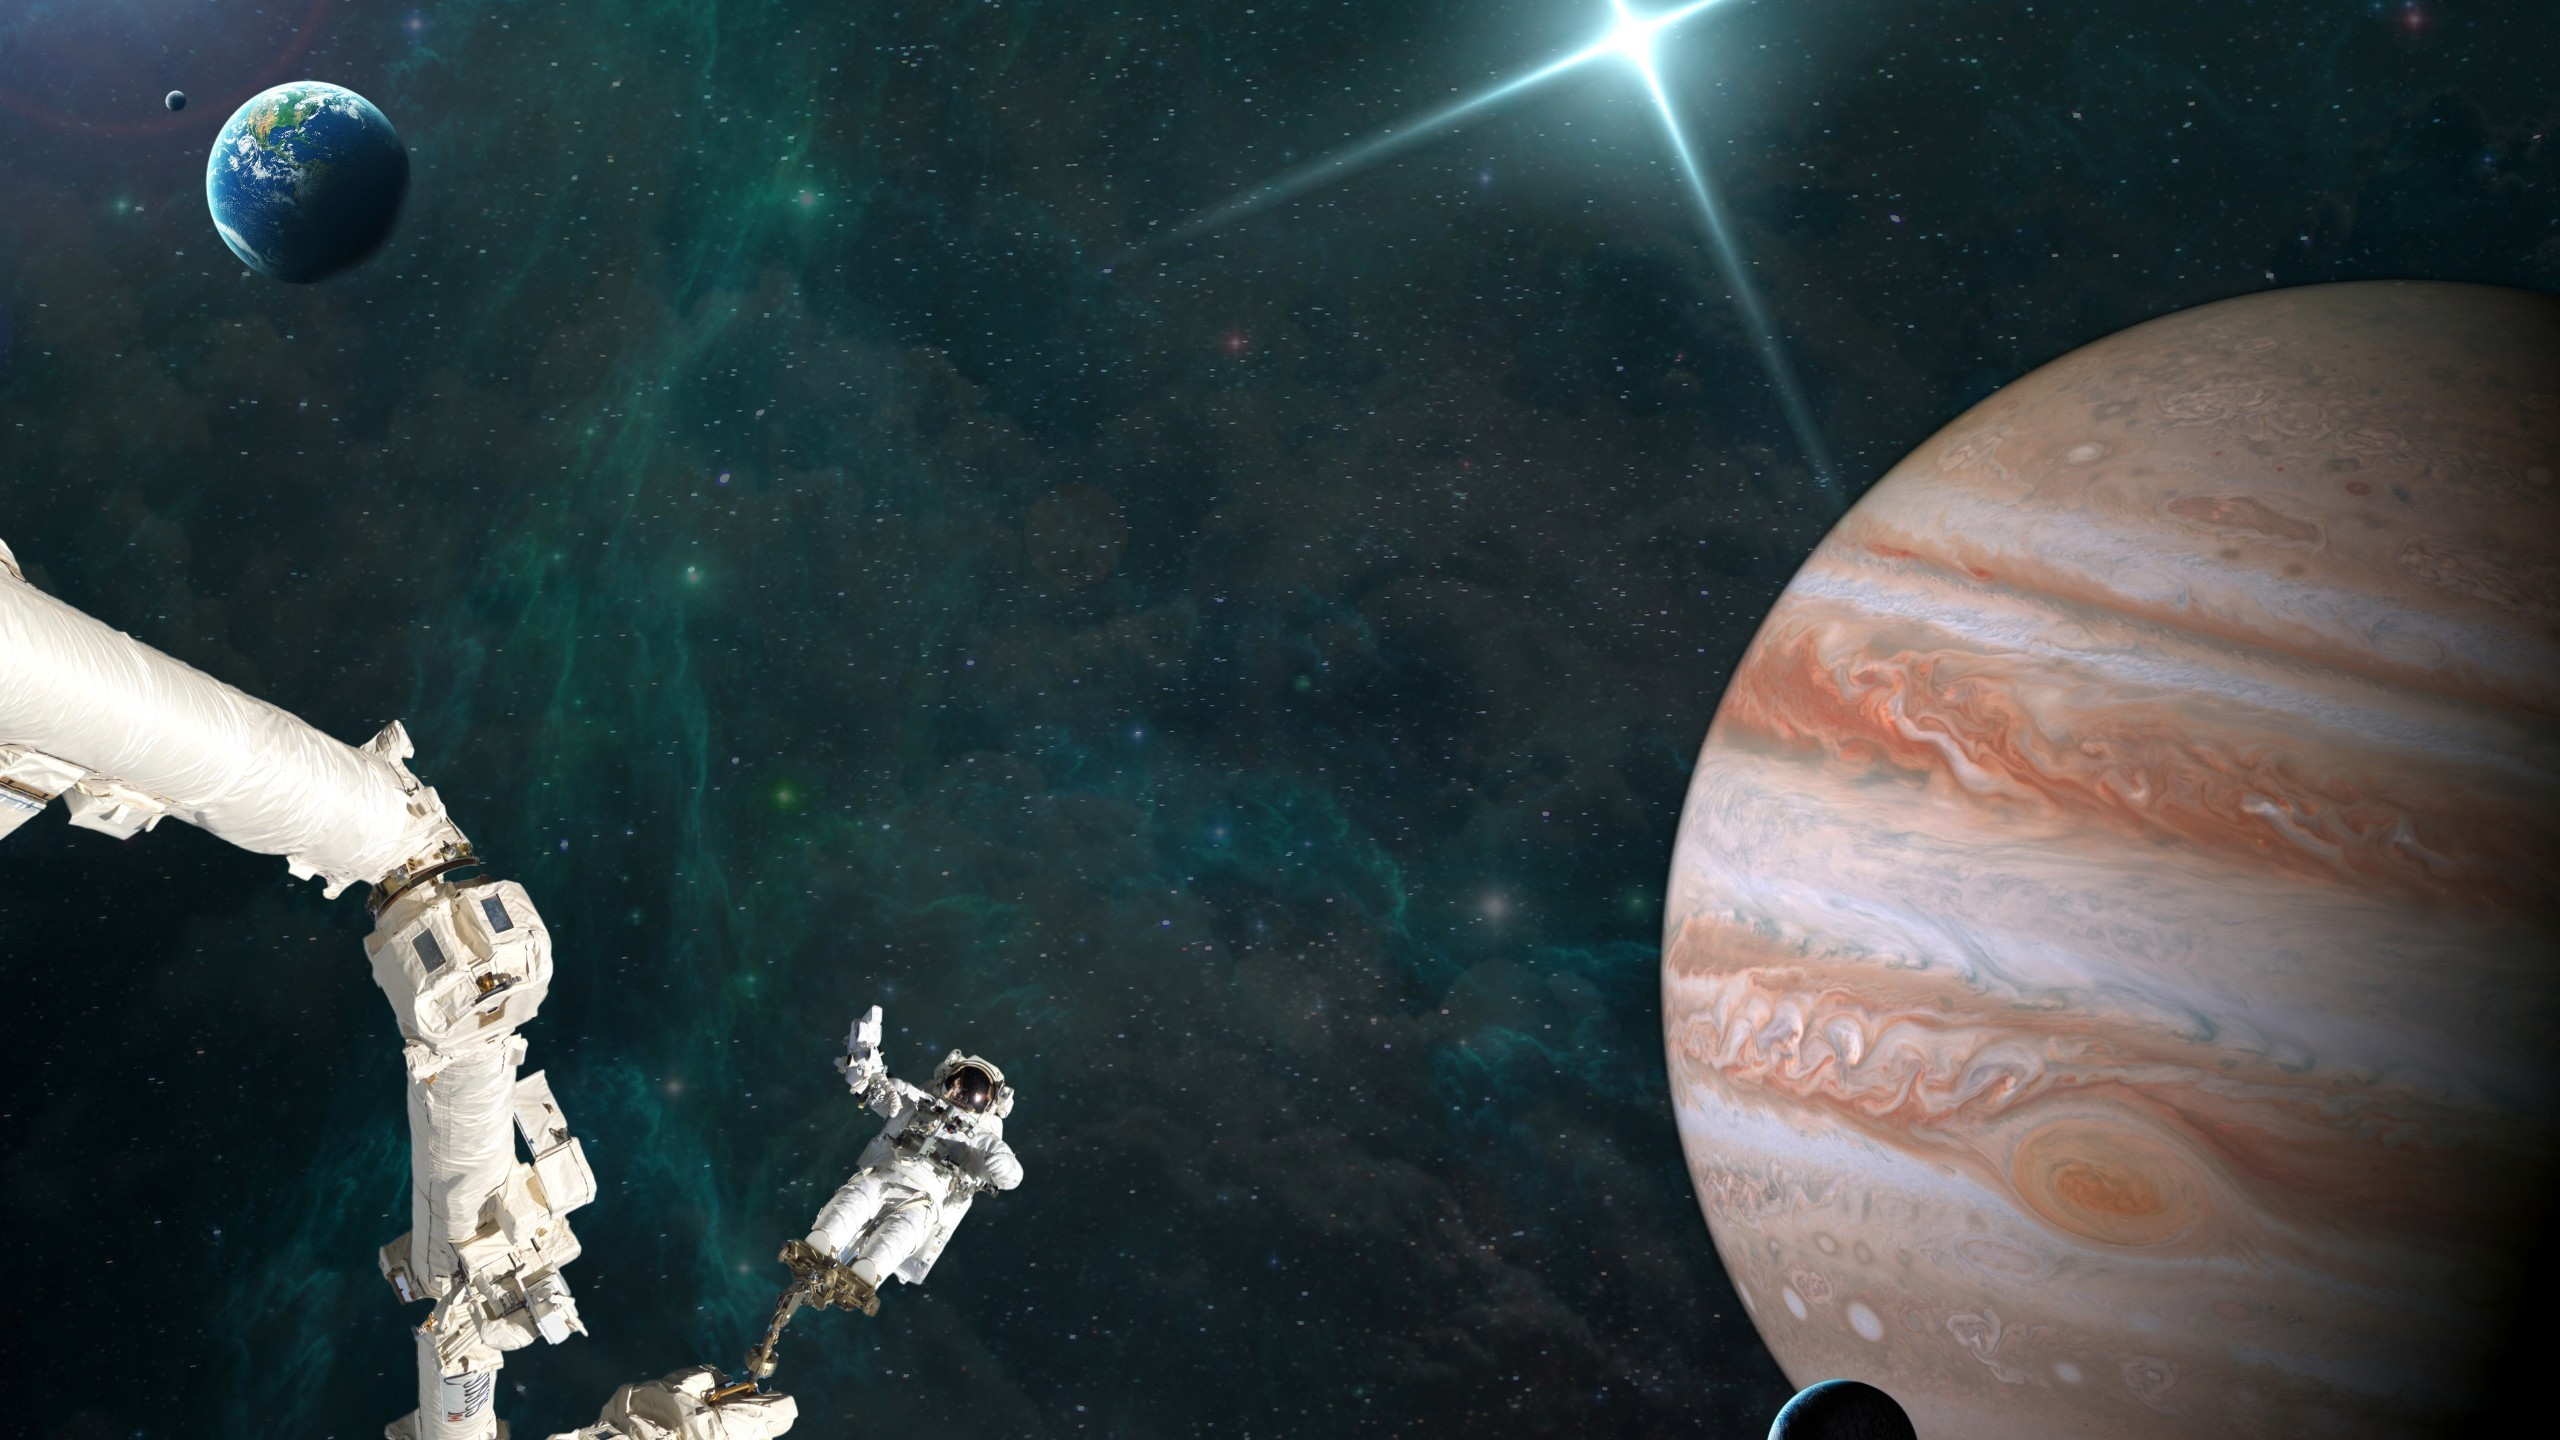 General 2560x1440 digital art space universe stars nebula planet Pluto Earth space station astronaut spacesuit helmet glowing Milky Way Solar System science fiction photo manipulation spaceship